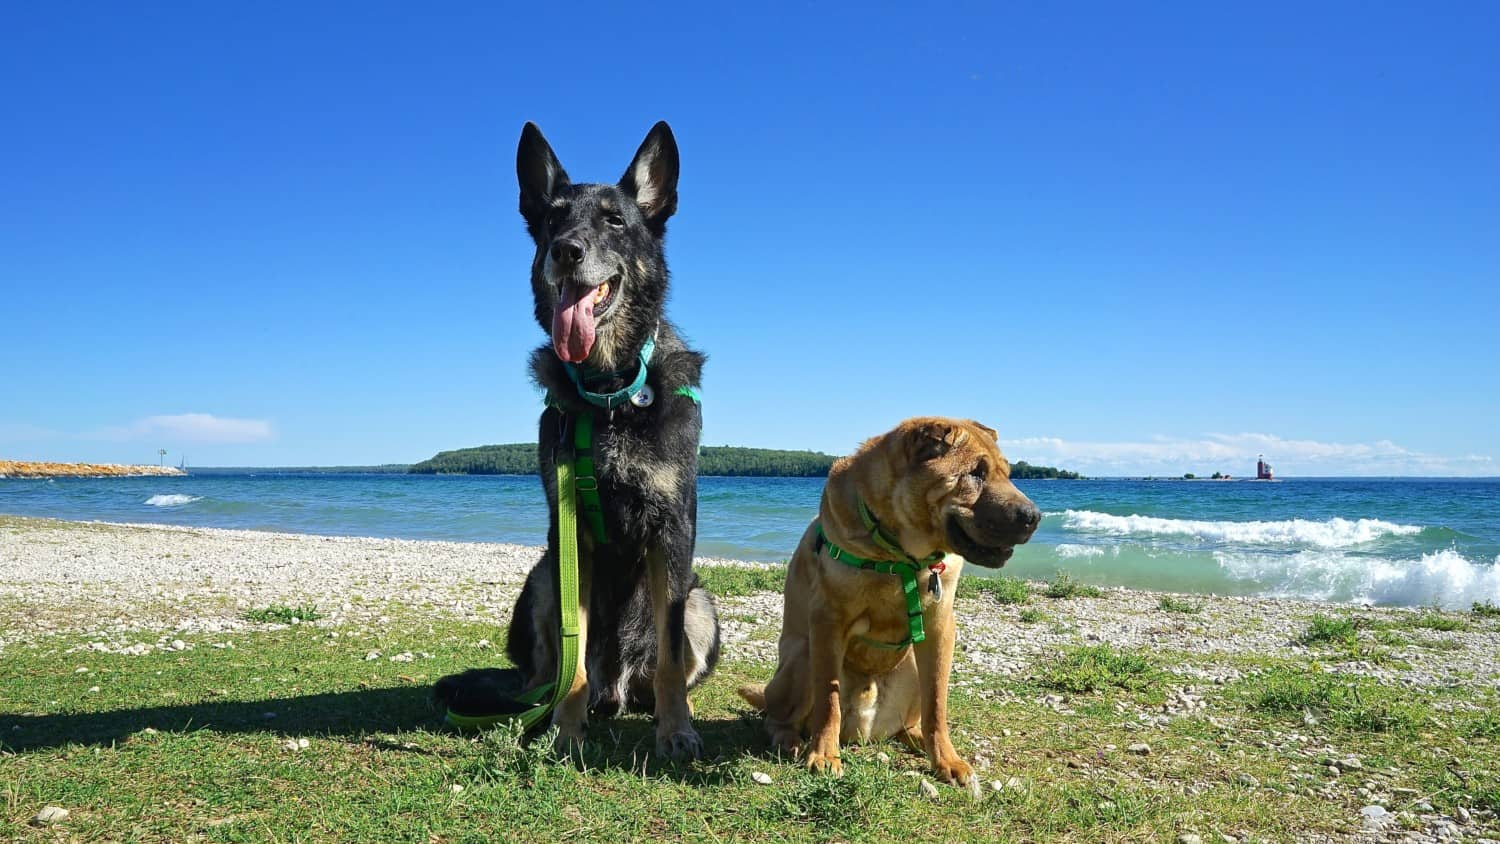 Michigan's Top Pet Friendly Attraction: Mackinac Island